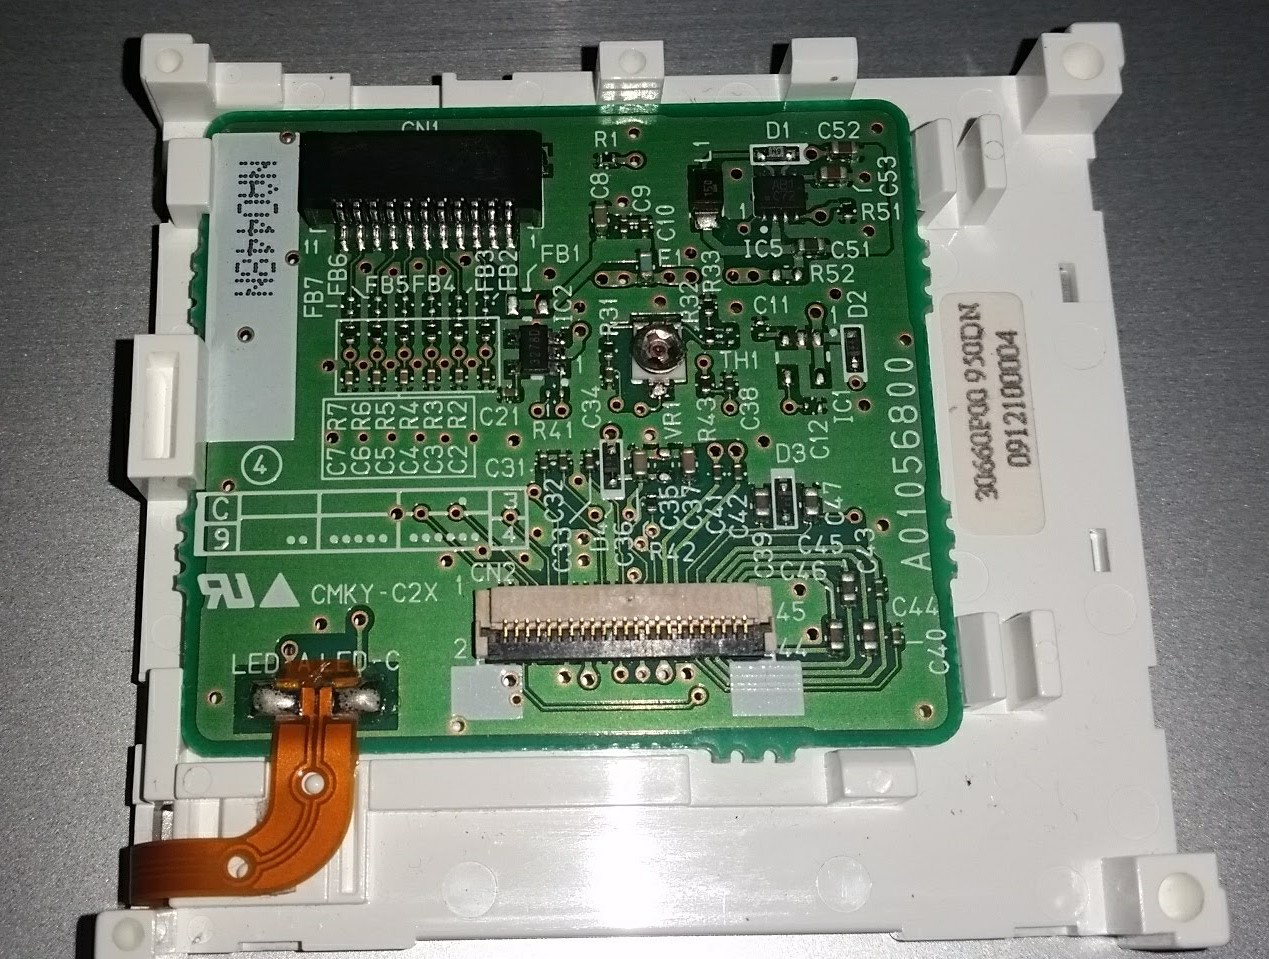 Pcb Is This Board Trace Repairable Electrical Engineering Stack